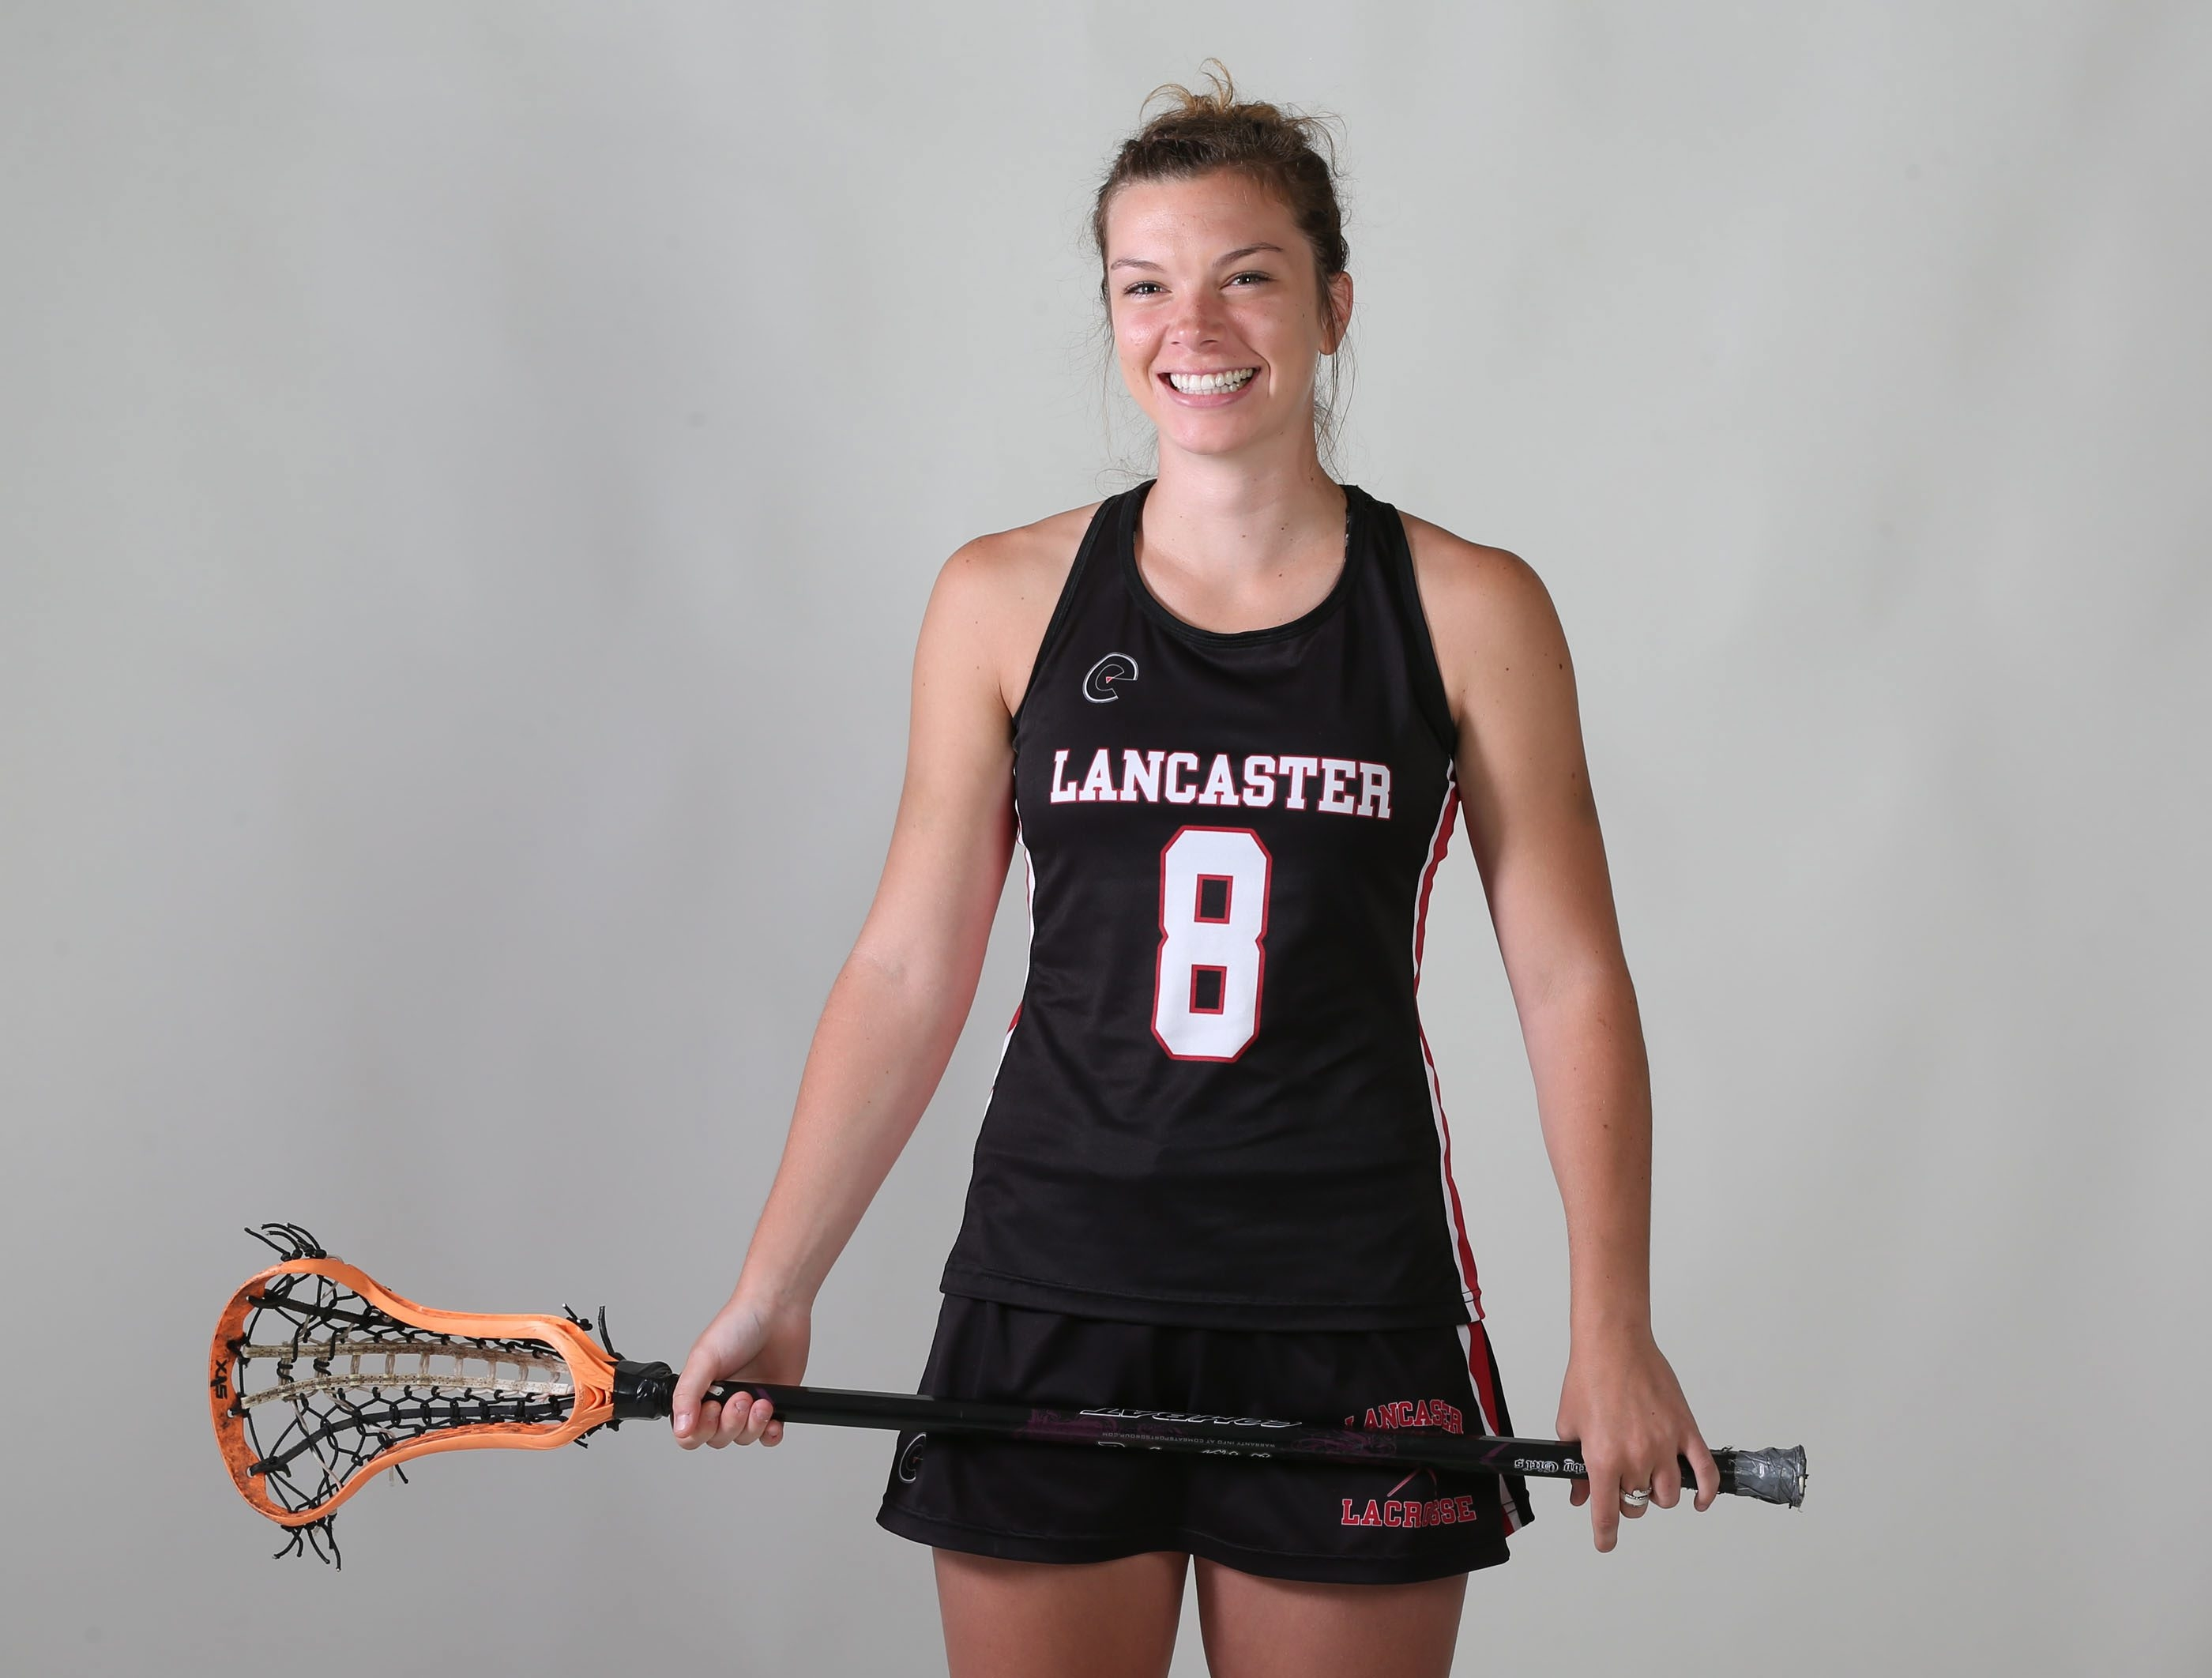 Grace Gabriel of Lancaster was this year's top girls lacrosse player by consensus.